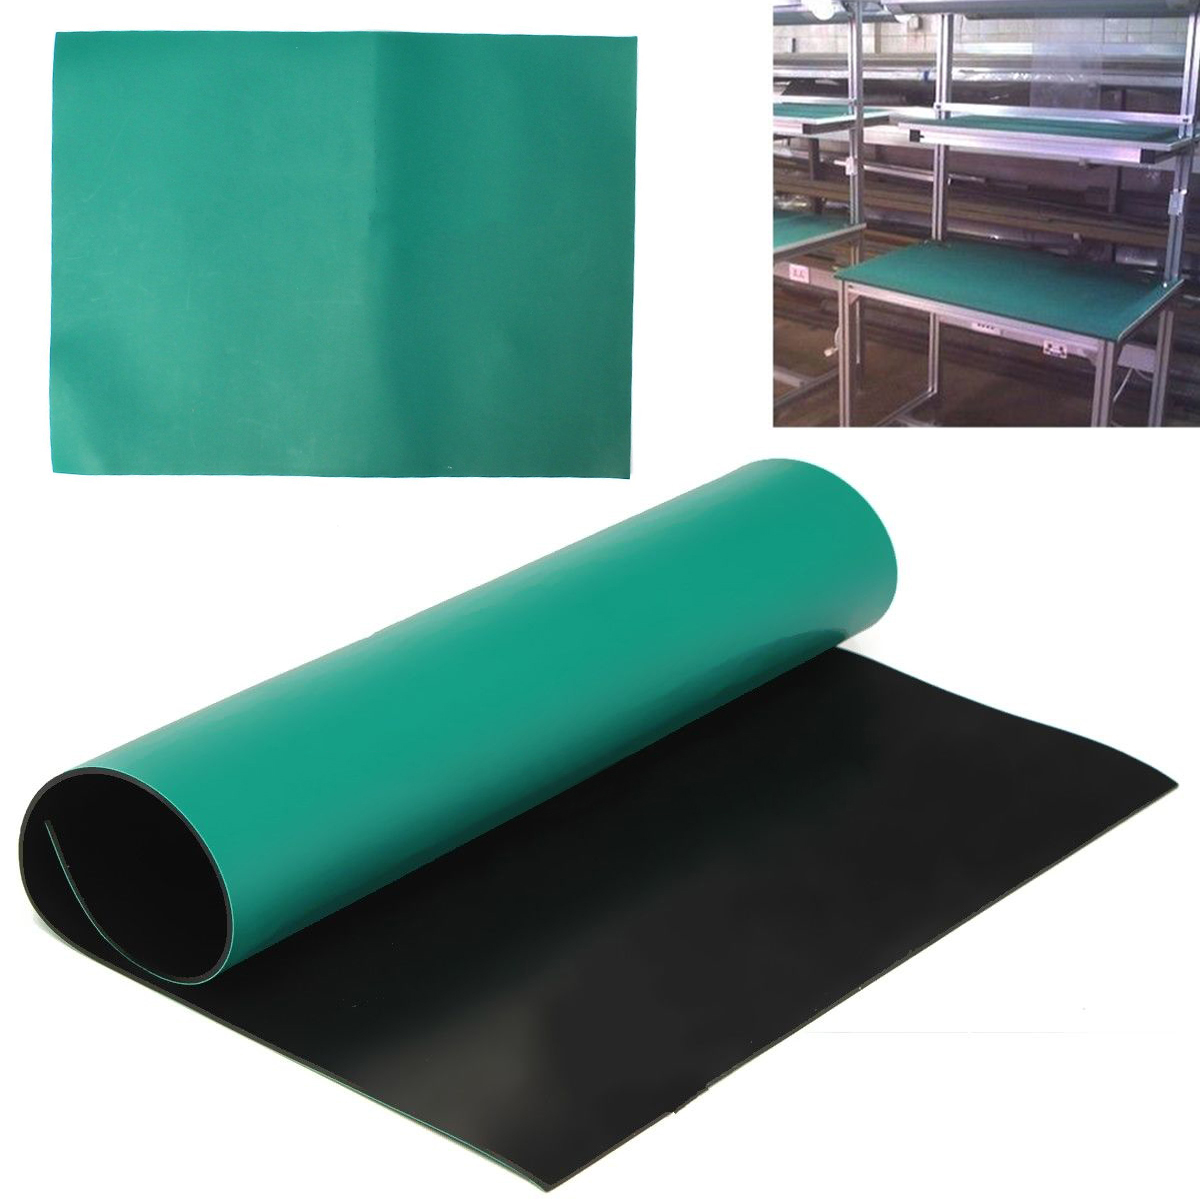 Mayitr Green Desktop Anti Static Mats Rubber ESD Grounding Mat Maintenance Platform Cushion For Electronics Repairing 30*40cm health grounded mat universal mat conductive kit grounding mats 68 25cm for emf protection